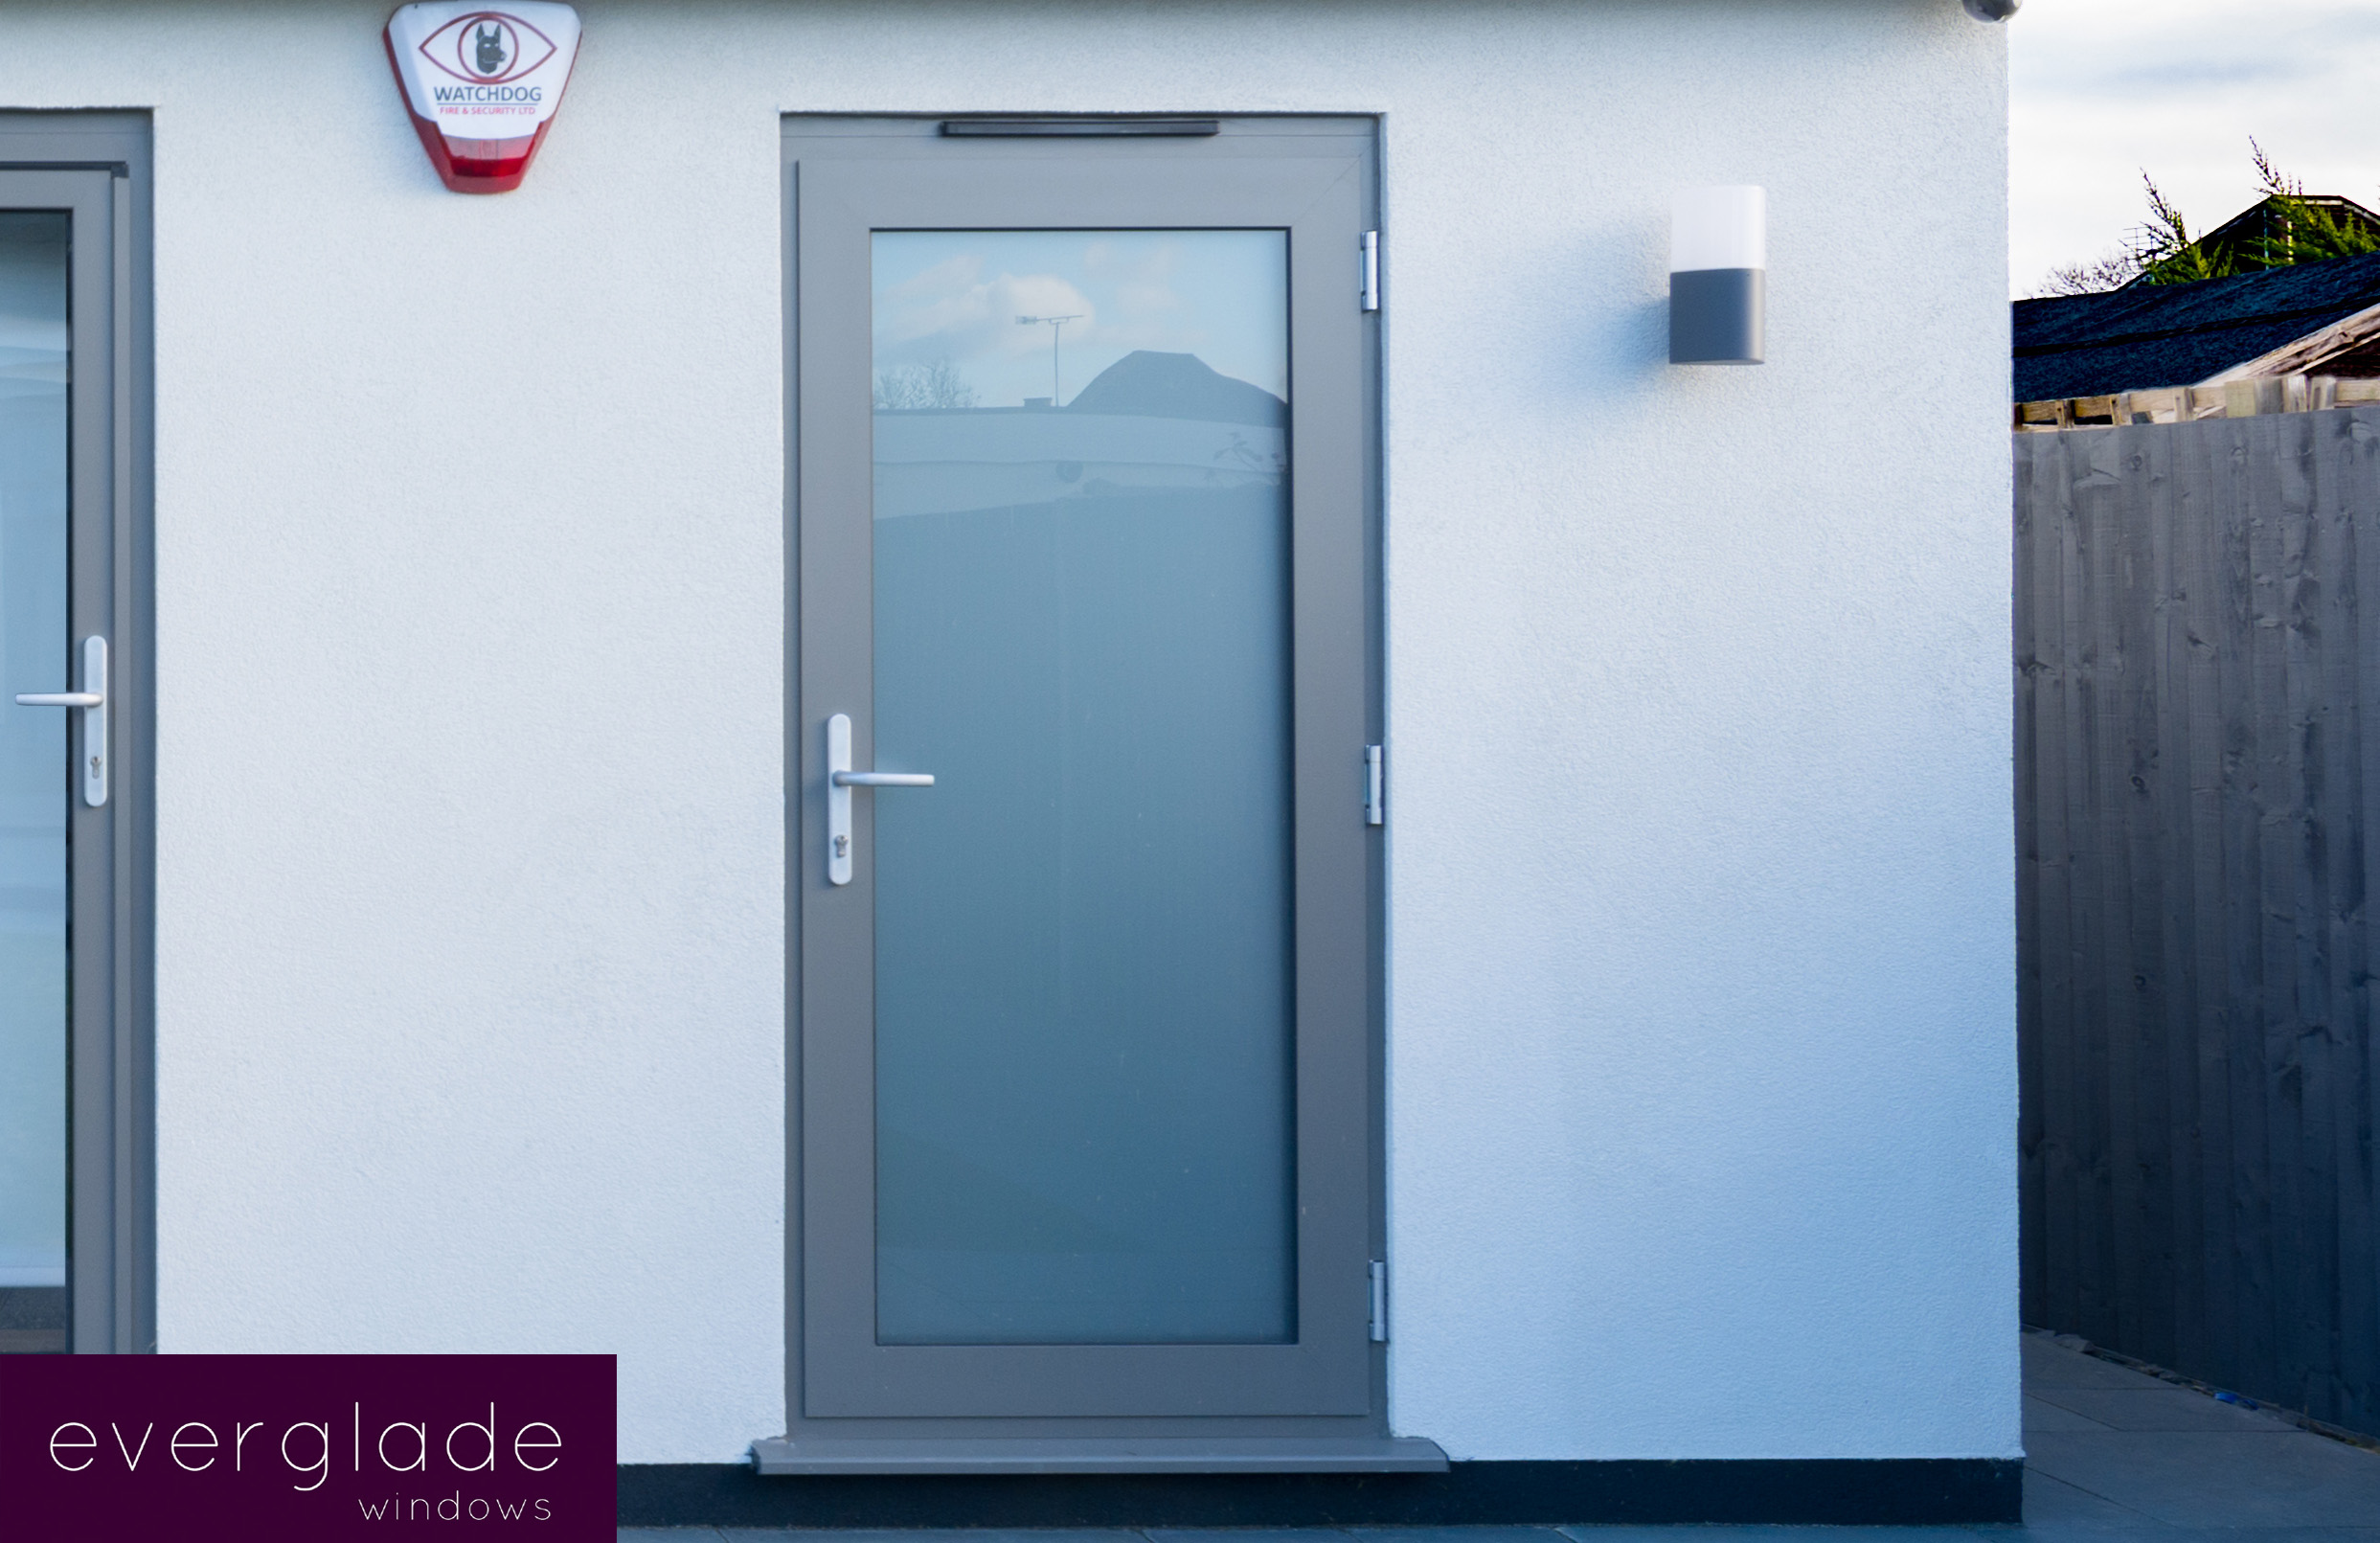 Residential Aluminum Entrance Doors : Aluminium entrance doors from everglade perivale